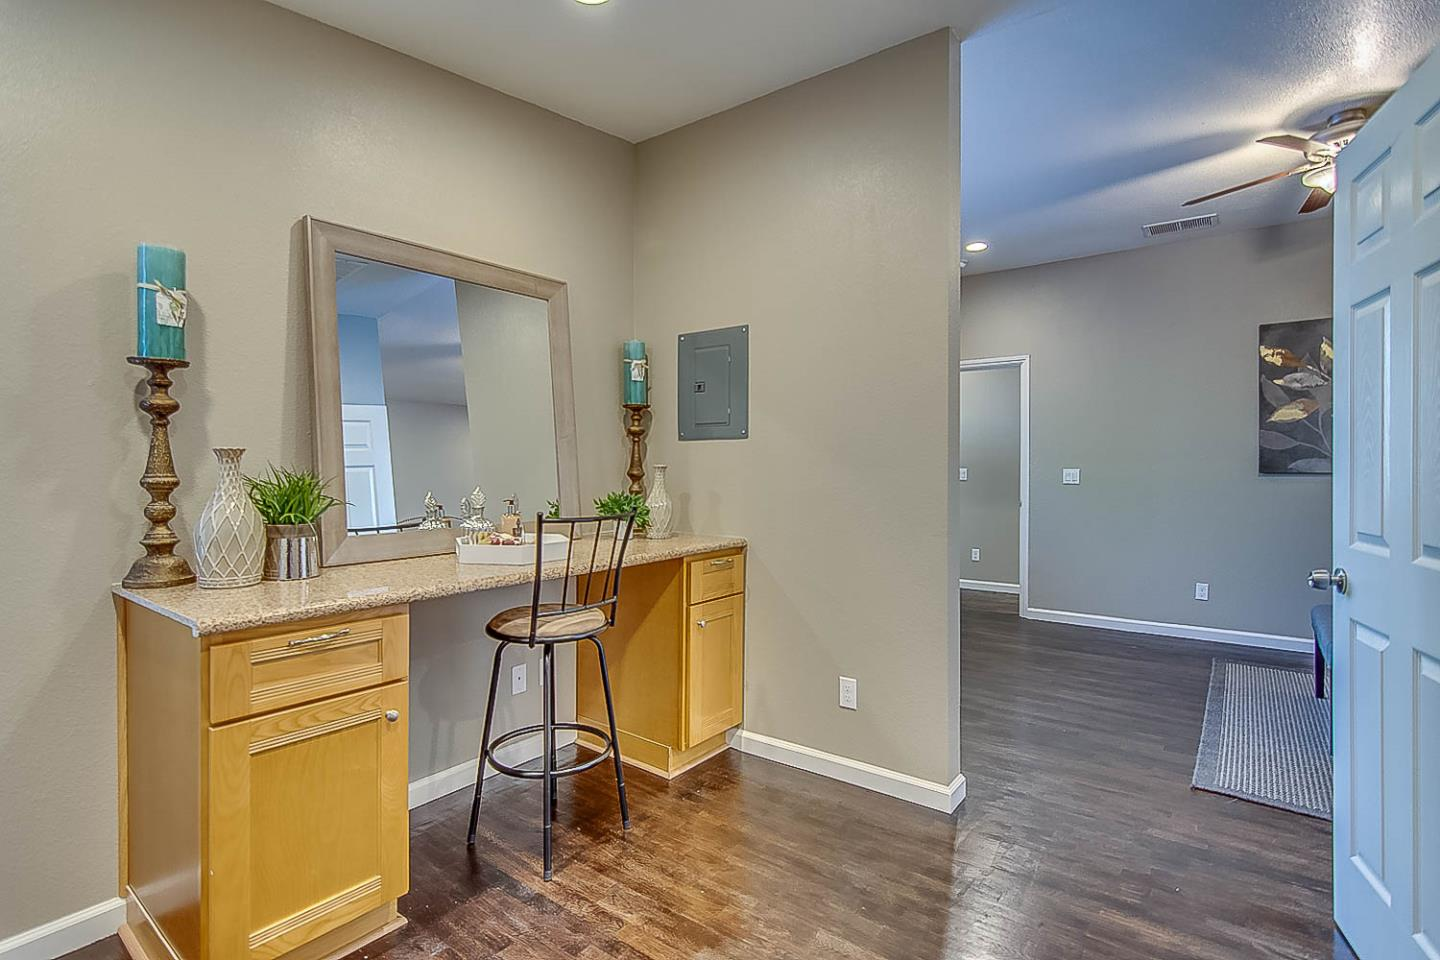 Additional photo for property listing at 3628 Kirk Street 3628 Kirk Street Stockton, Kalifornien 95204 Vereinigte Staaten